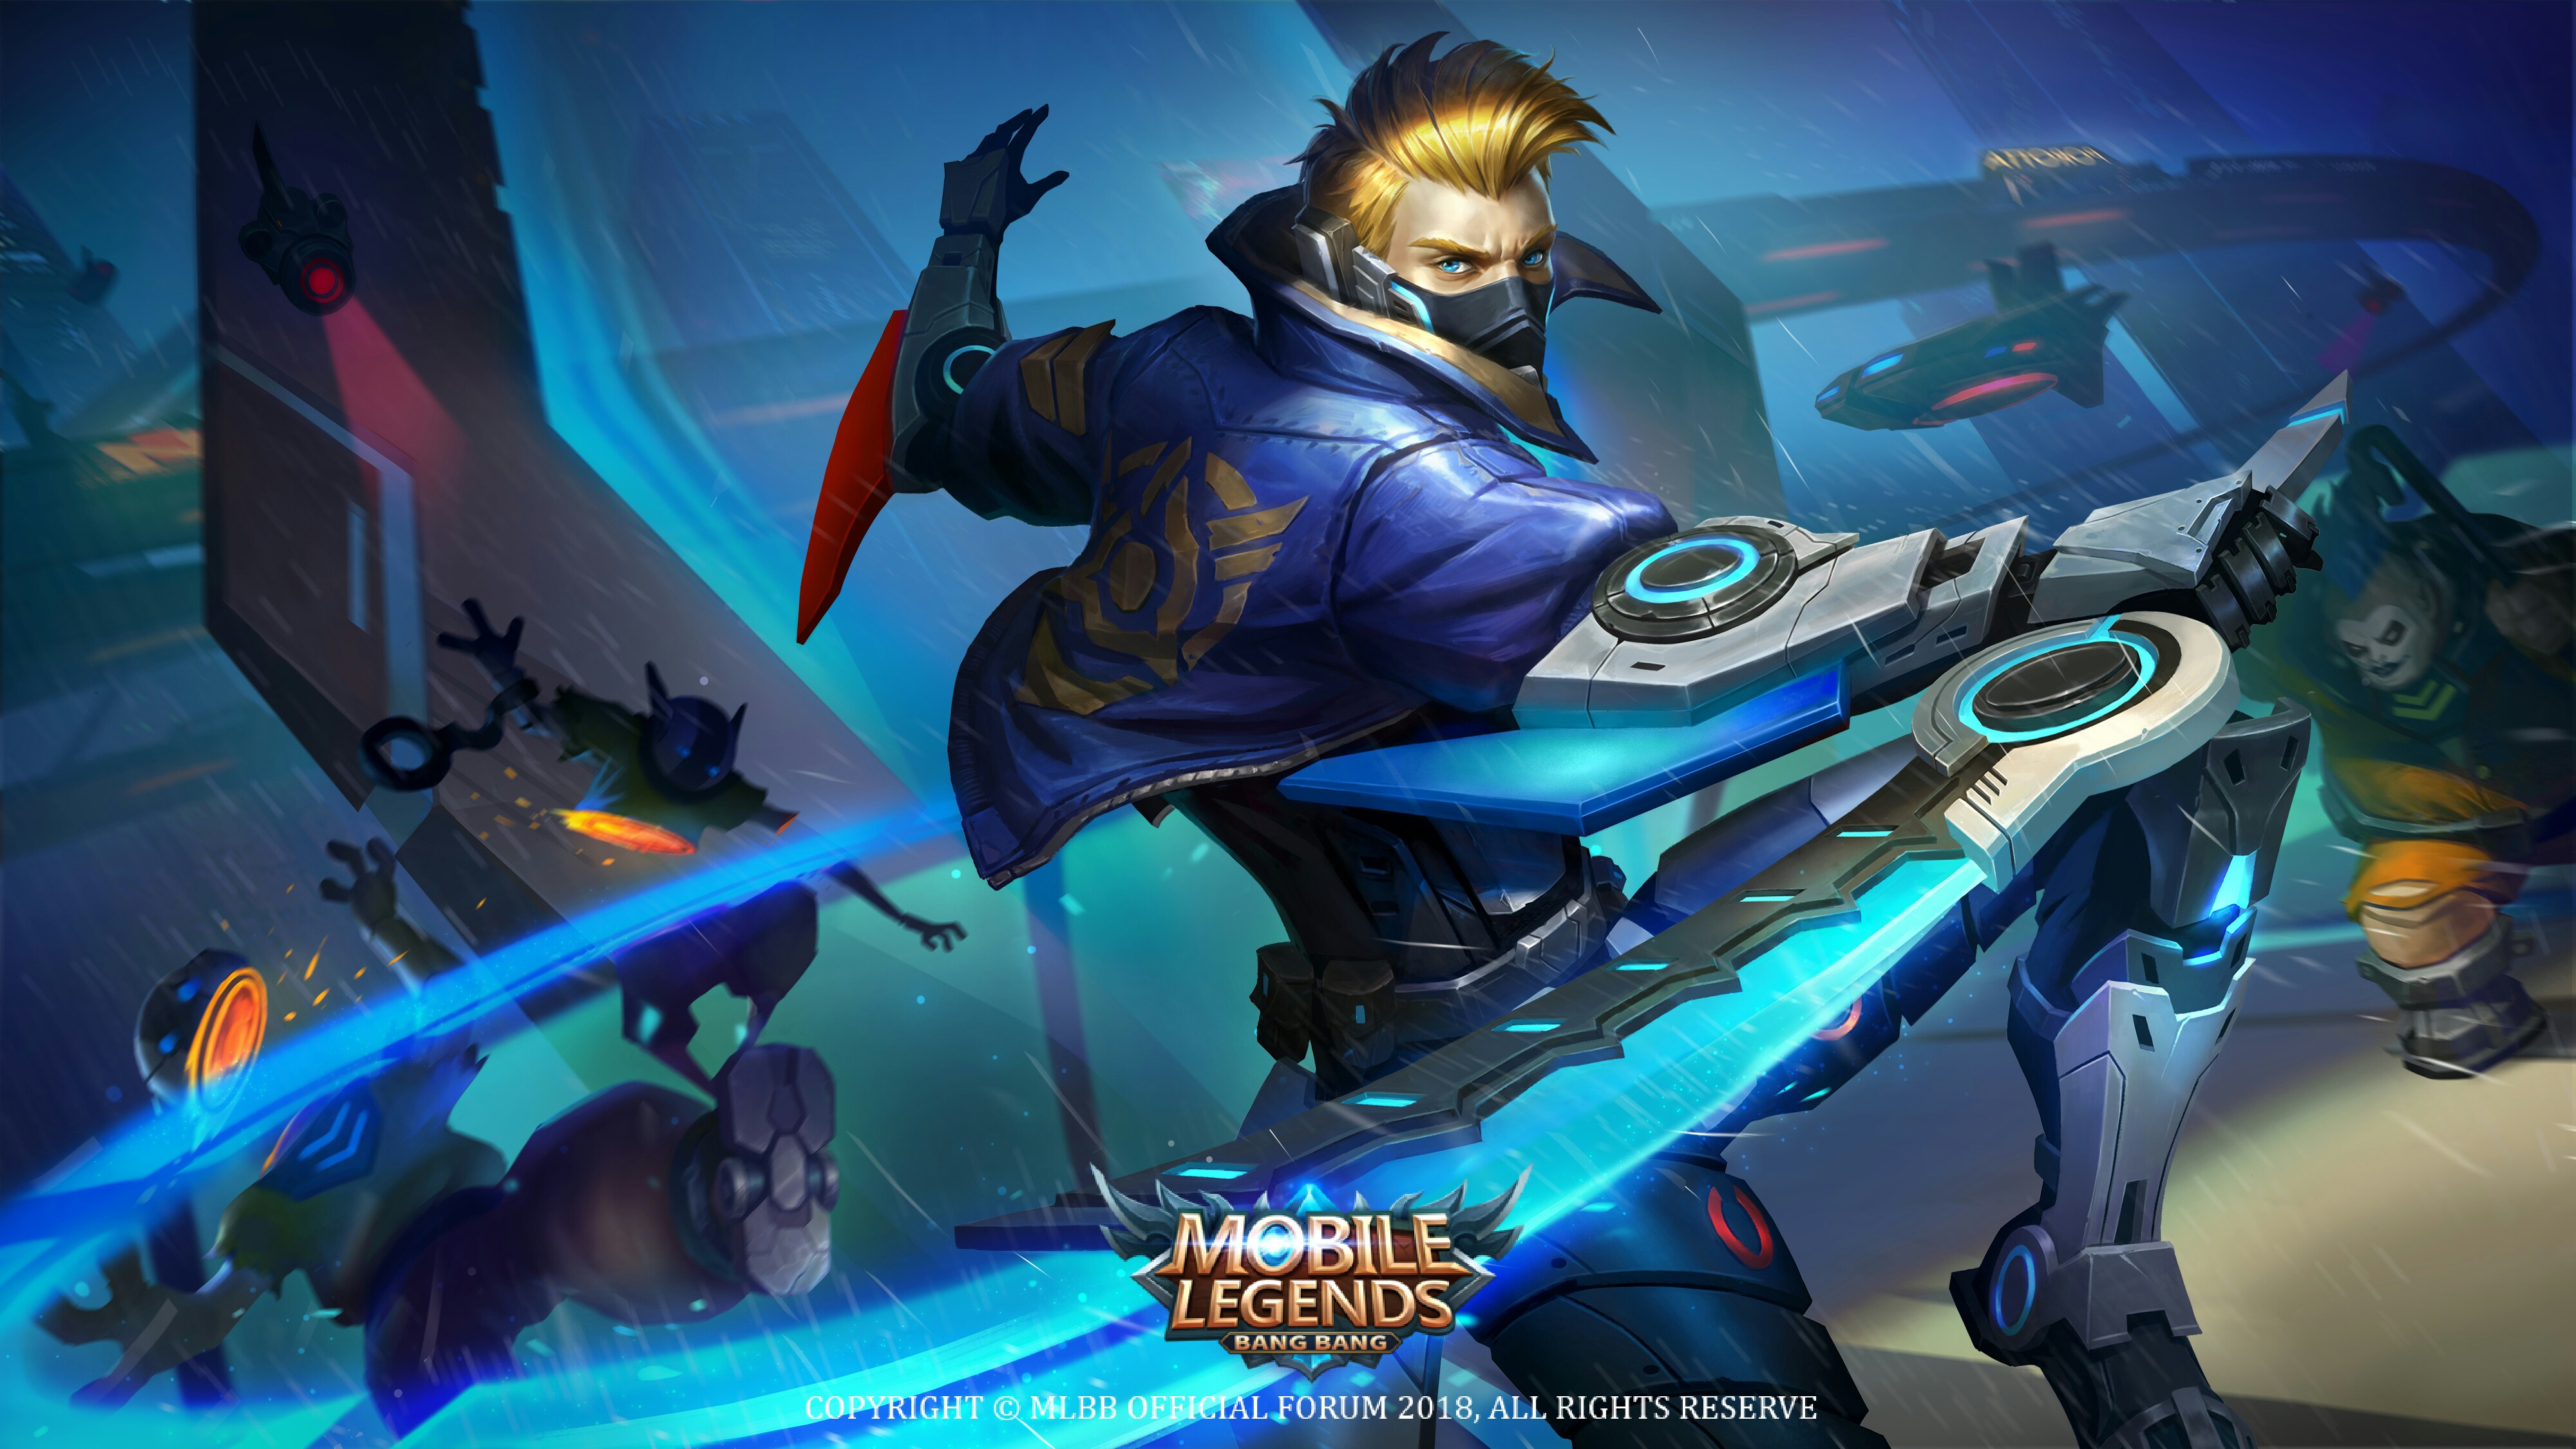 Desktop Wallpapers Hayabusa Mobile Legends Cover